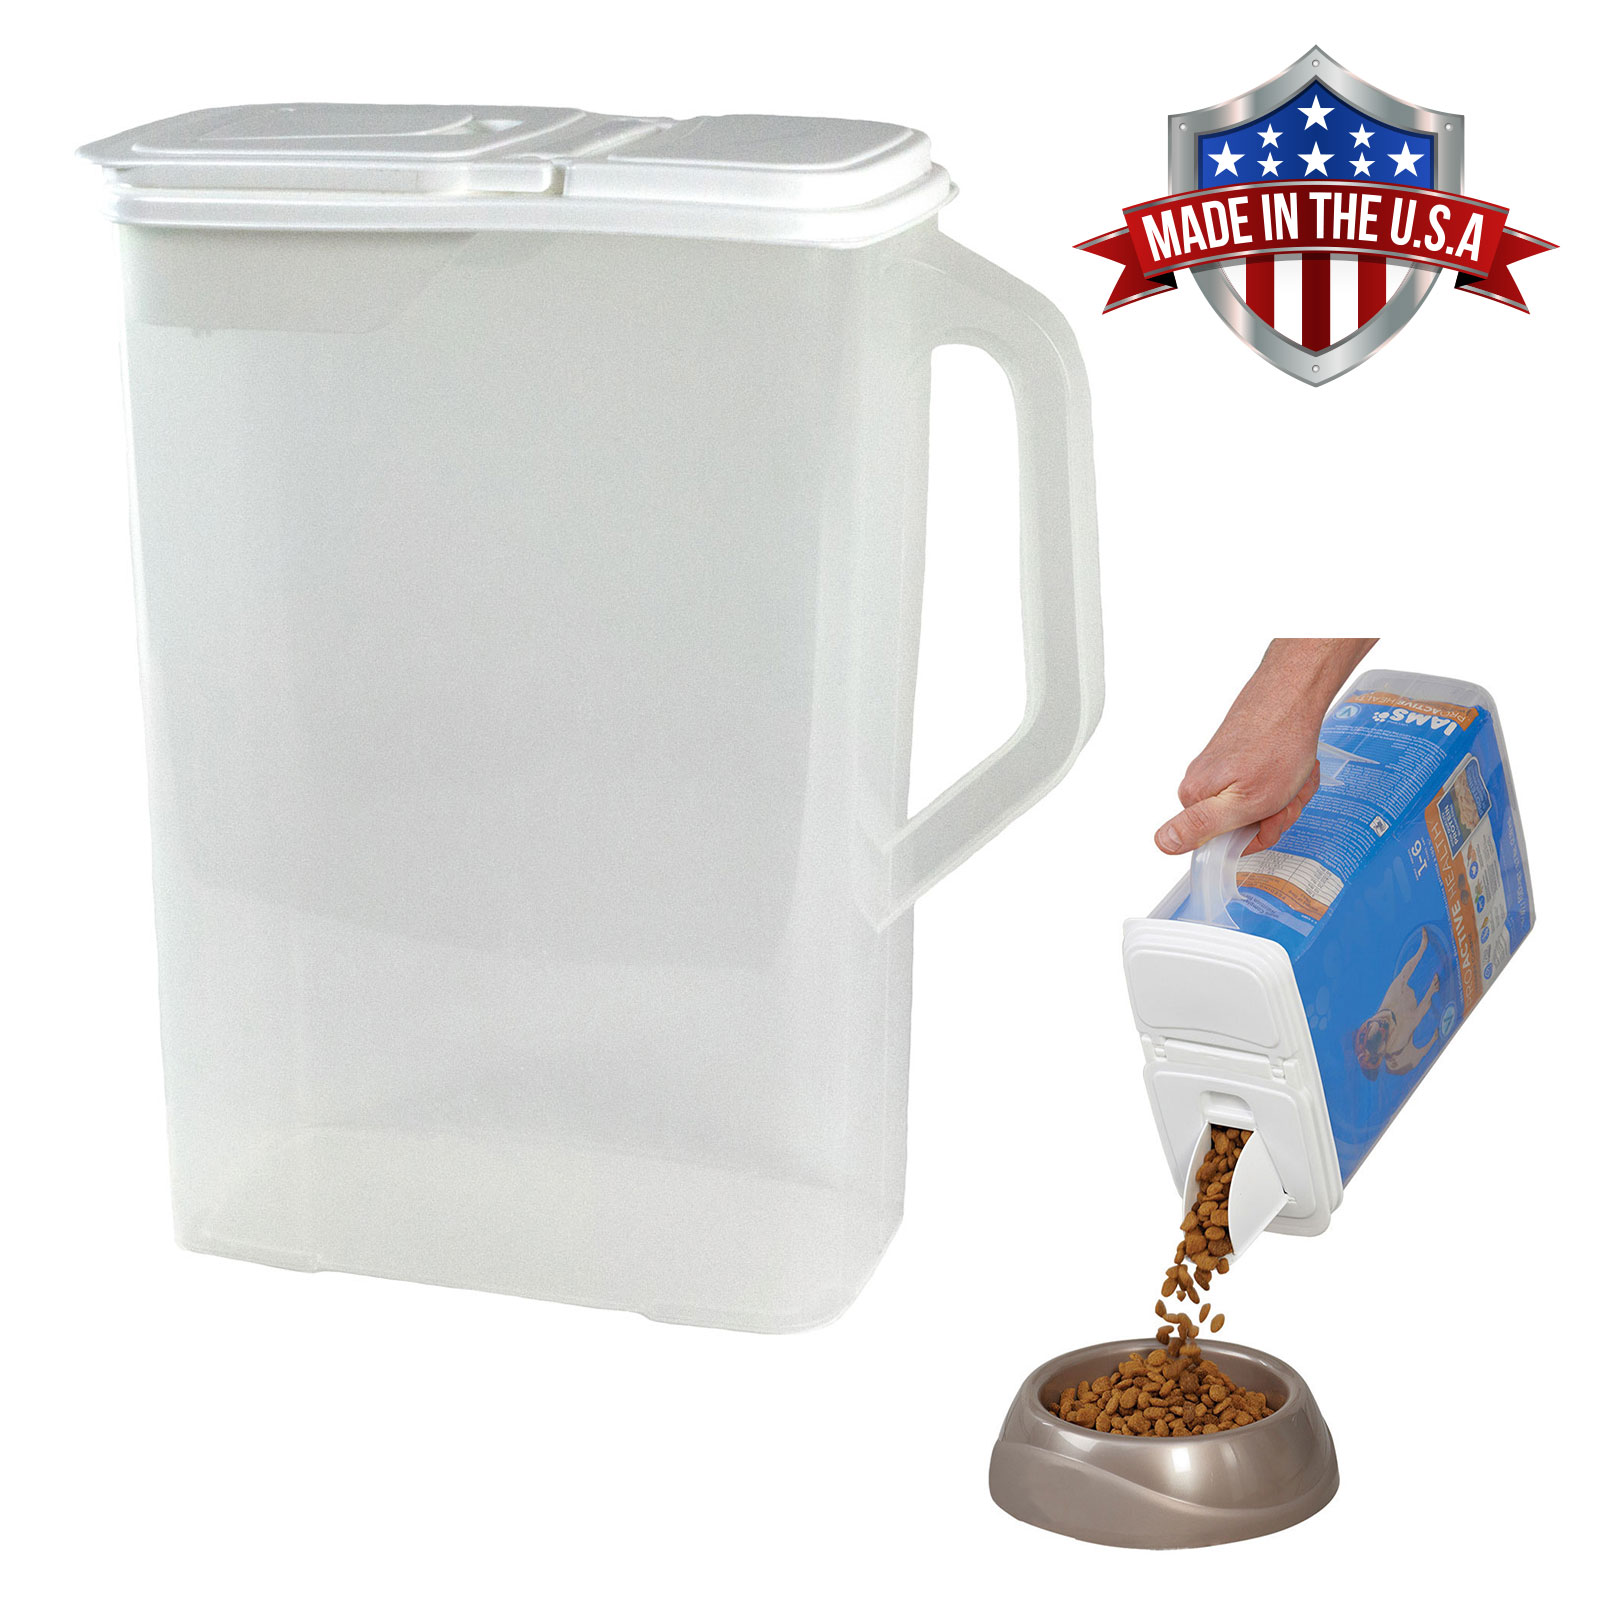 Food Storage Container Large 8 Quart Pour n' Store Keeper and Dispenser with Handle